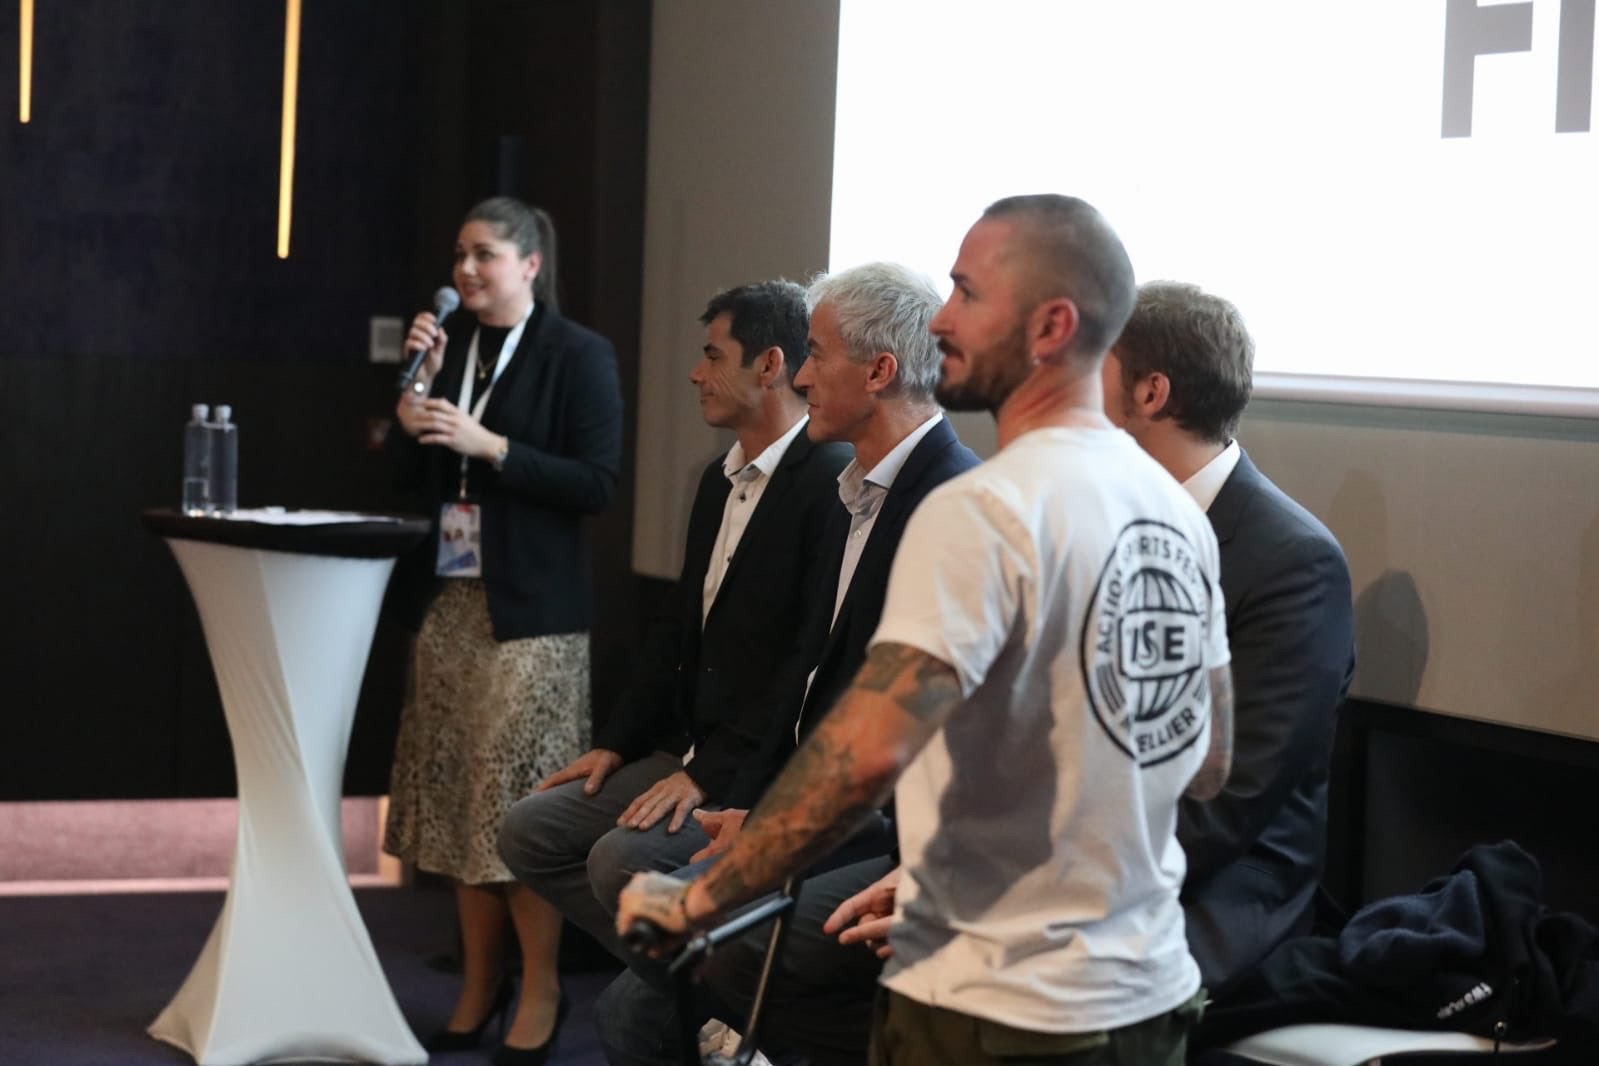 The rise of urban sports and how they can be used to increase peace was discussed ©Peace and Sport